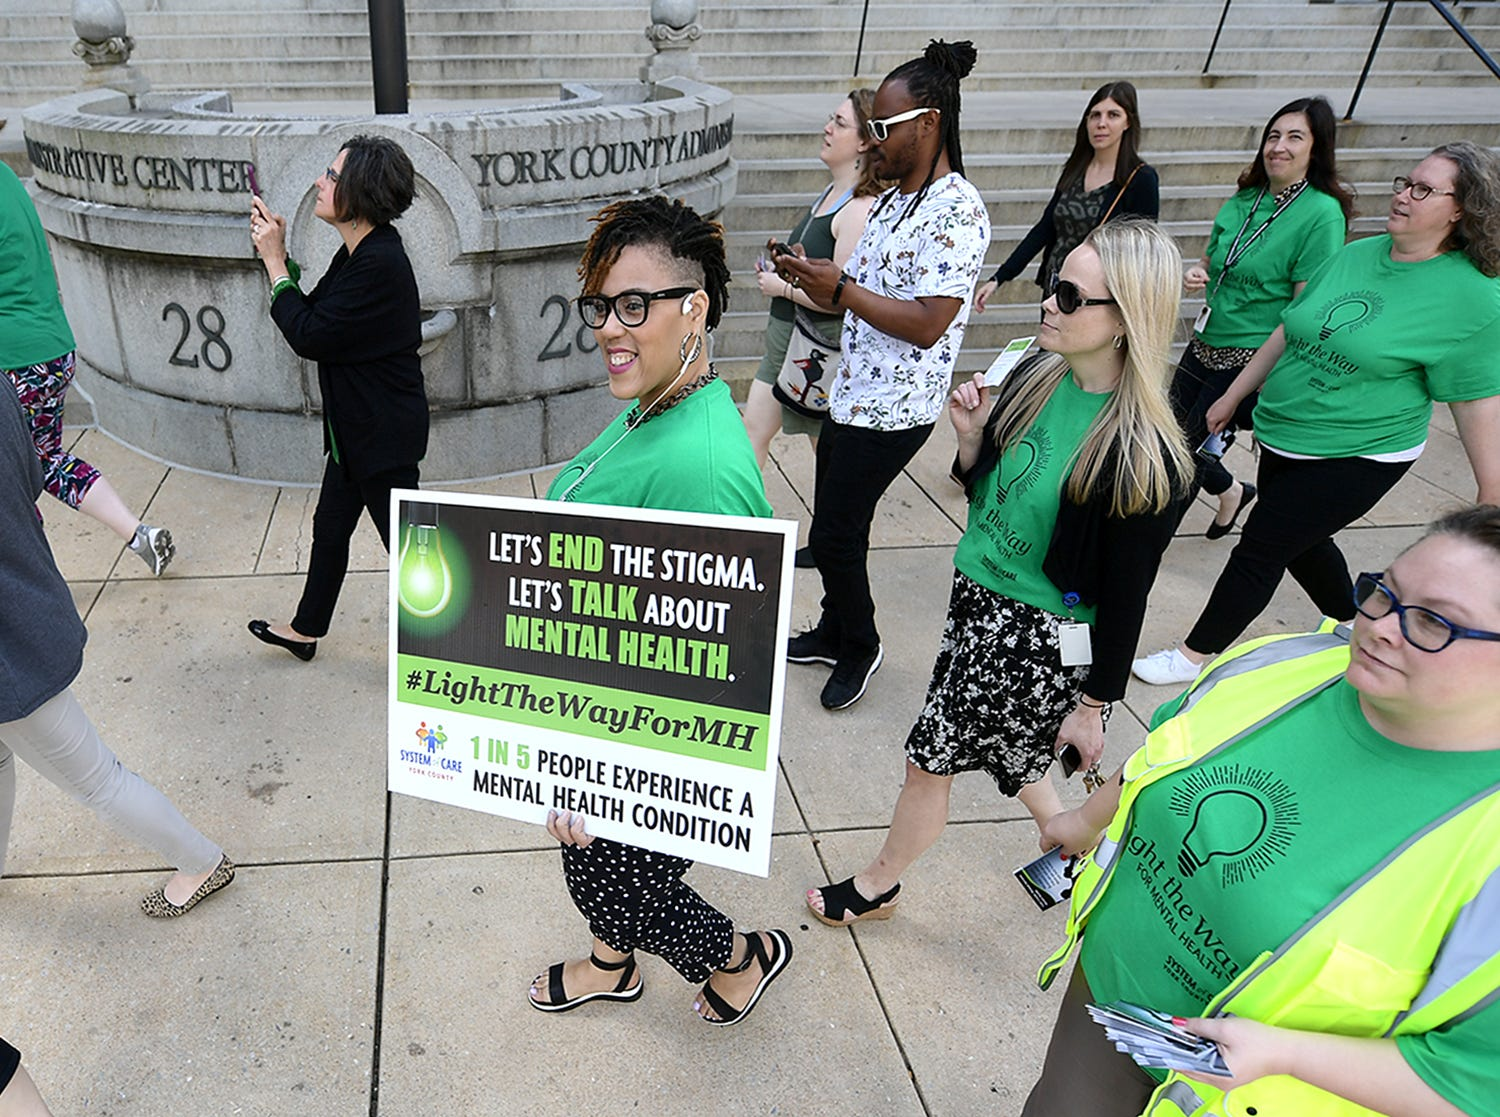 York County Human Services employee Endi Dabney-Cox carries a sign during the Walk To Raise Awareness About Mental Health as it passes the York County Administration Building in York City Monday, May 6, 2019. The York County System of Care in collaboration with York County Human Services sponsored the walk during Mental Health Awareness Month. Area business and organizations will be displaying green lighting through May 12th to show support. Bill Kalina photo